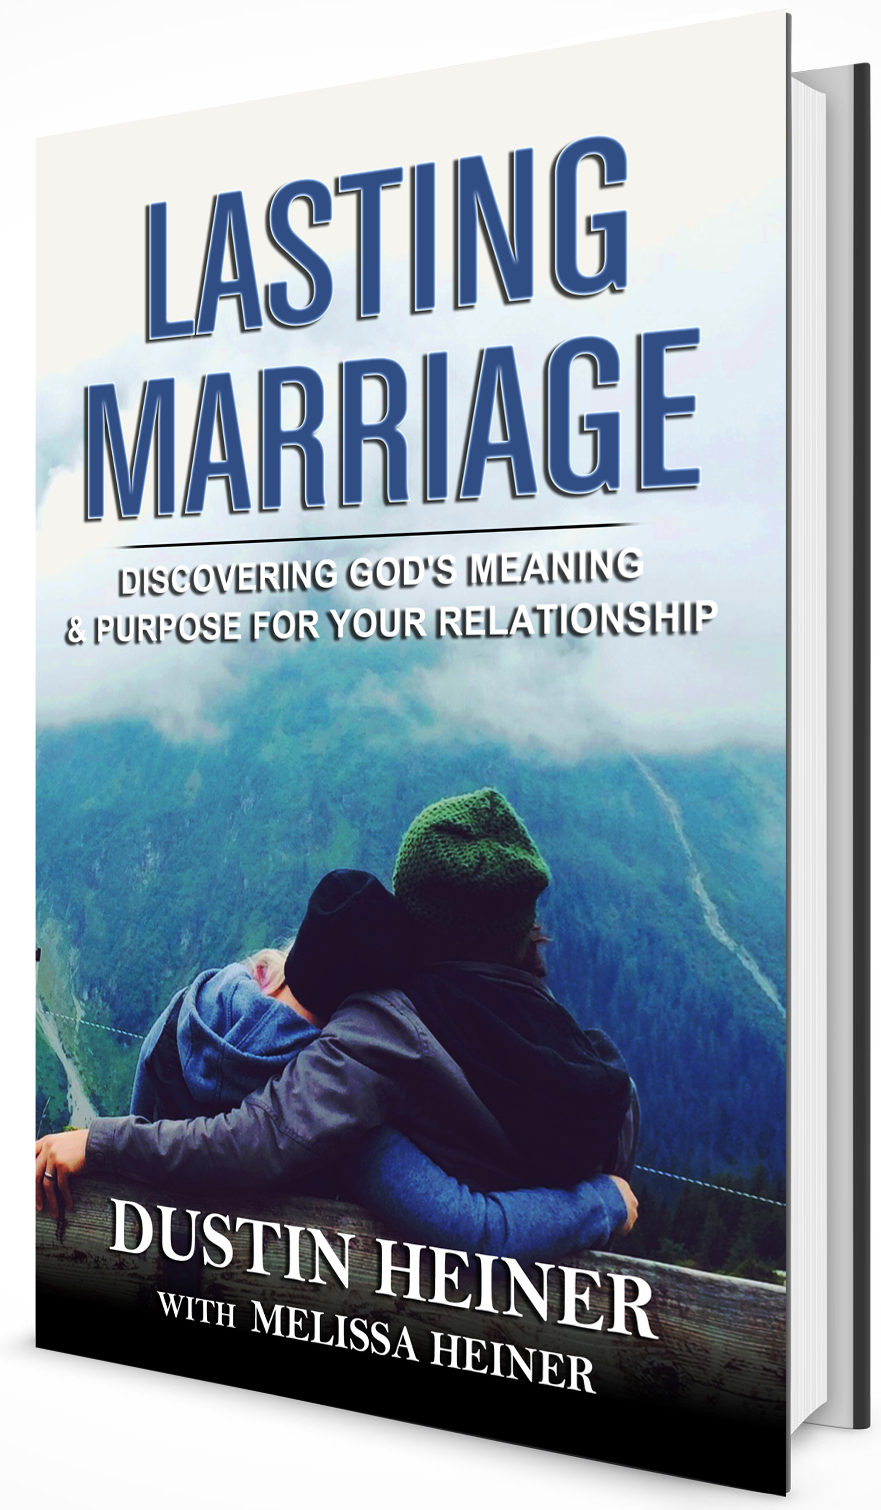 lasting marriage hard cover